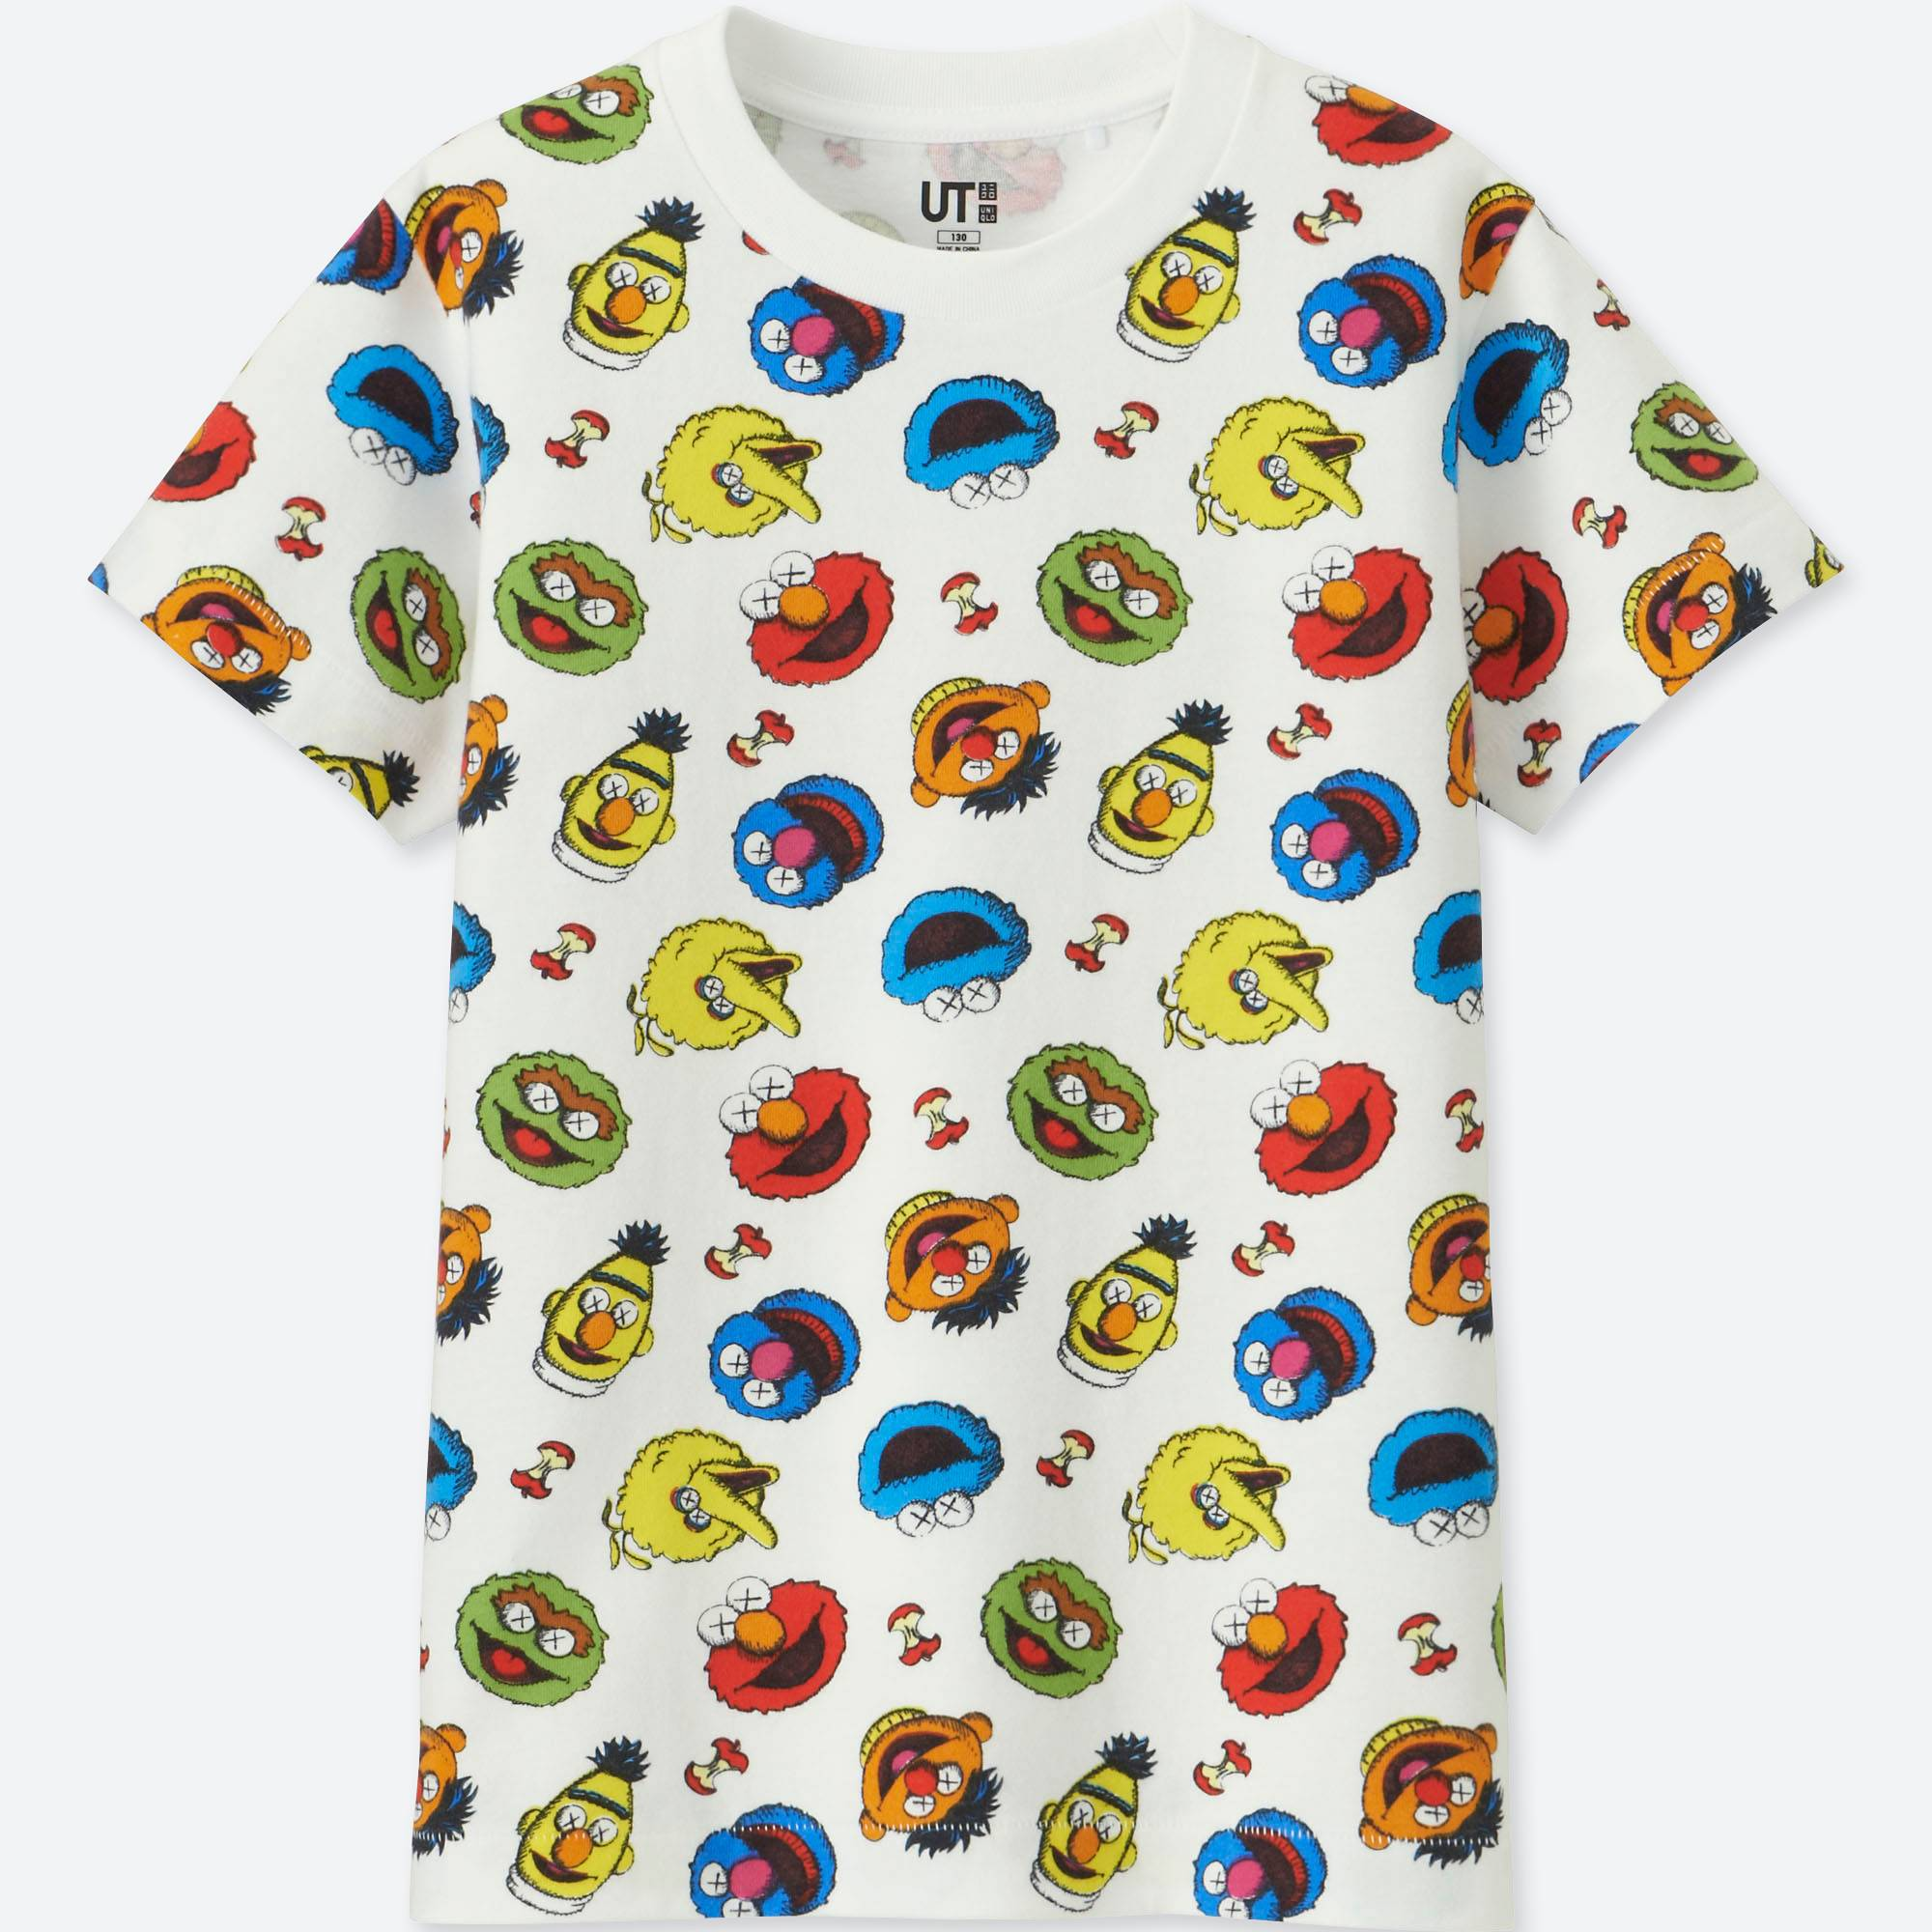 90d31fd4e UNIQLO UT joins with KAWS and Sesame Street for a new collection. The full  T-shirt lineup features 17 different graphic designs in various colour  options.